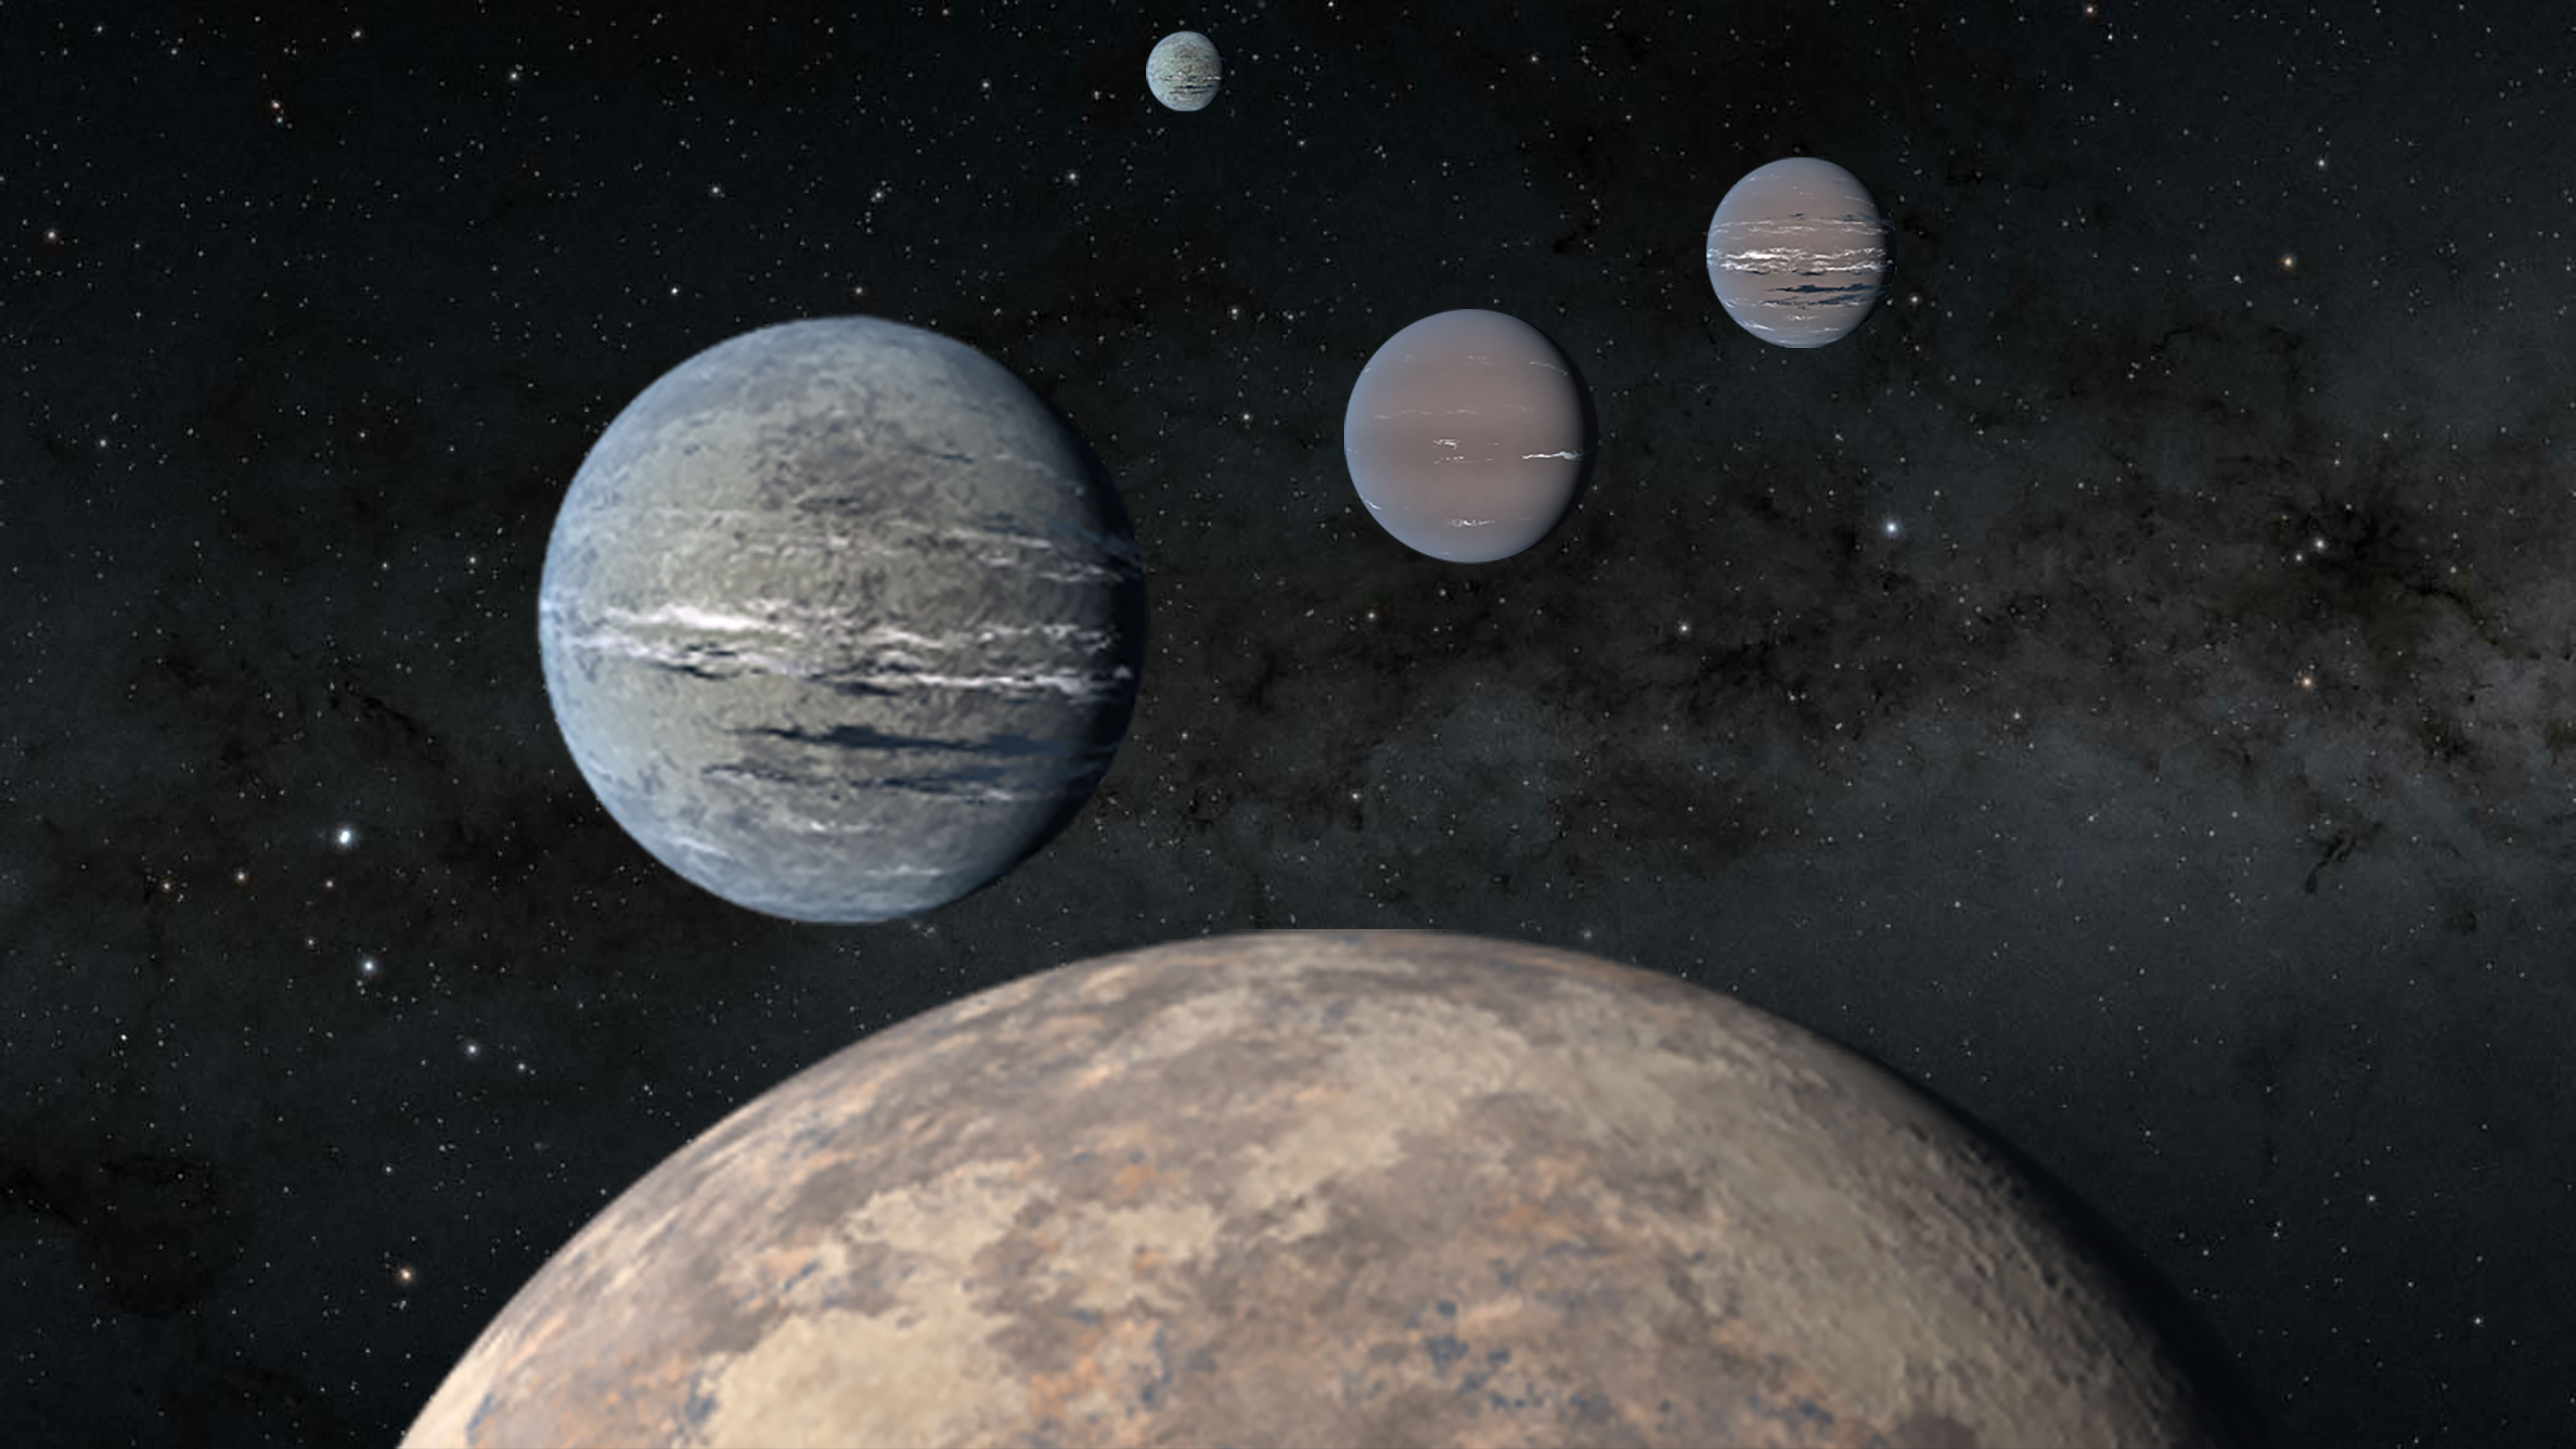 Artist rendering of 5 planets of varying sizes